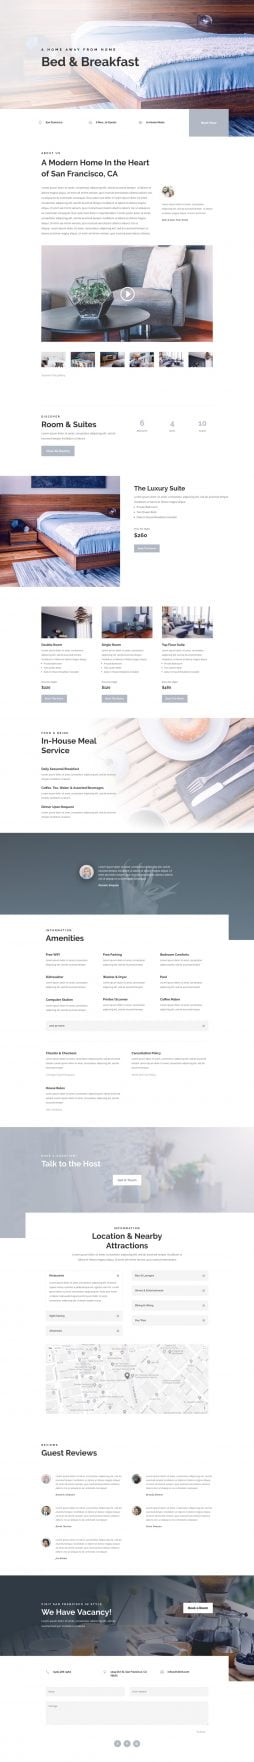 bed-and-breakfast-landing-page-254x1762